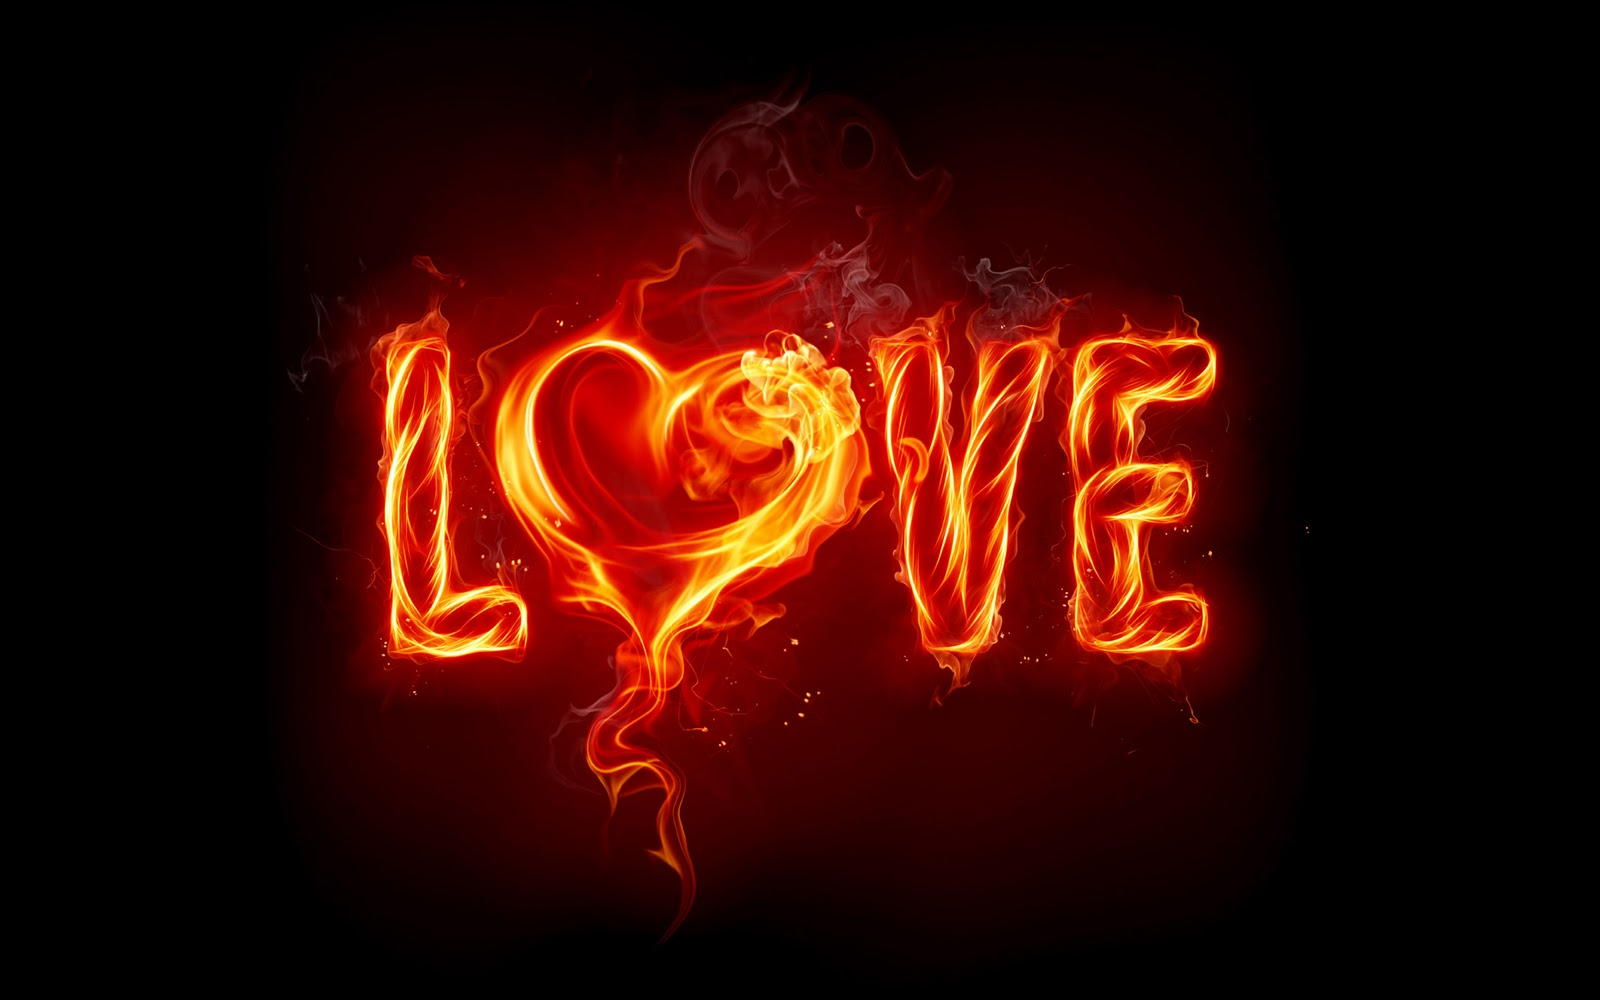 http://3.bp.blogspot.com/-v5p58aOumRA/UKvciDVALfI/AAAAAAAAIII/Re9wLVa56mM/s1600/burning-love-hd-wallpaper-1920x1200.jpg